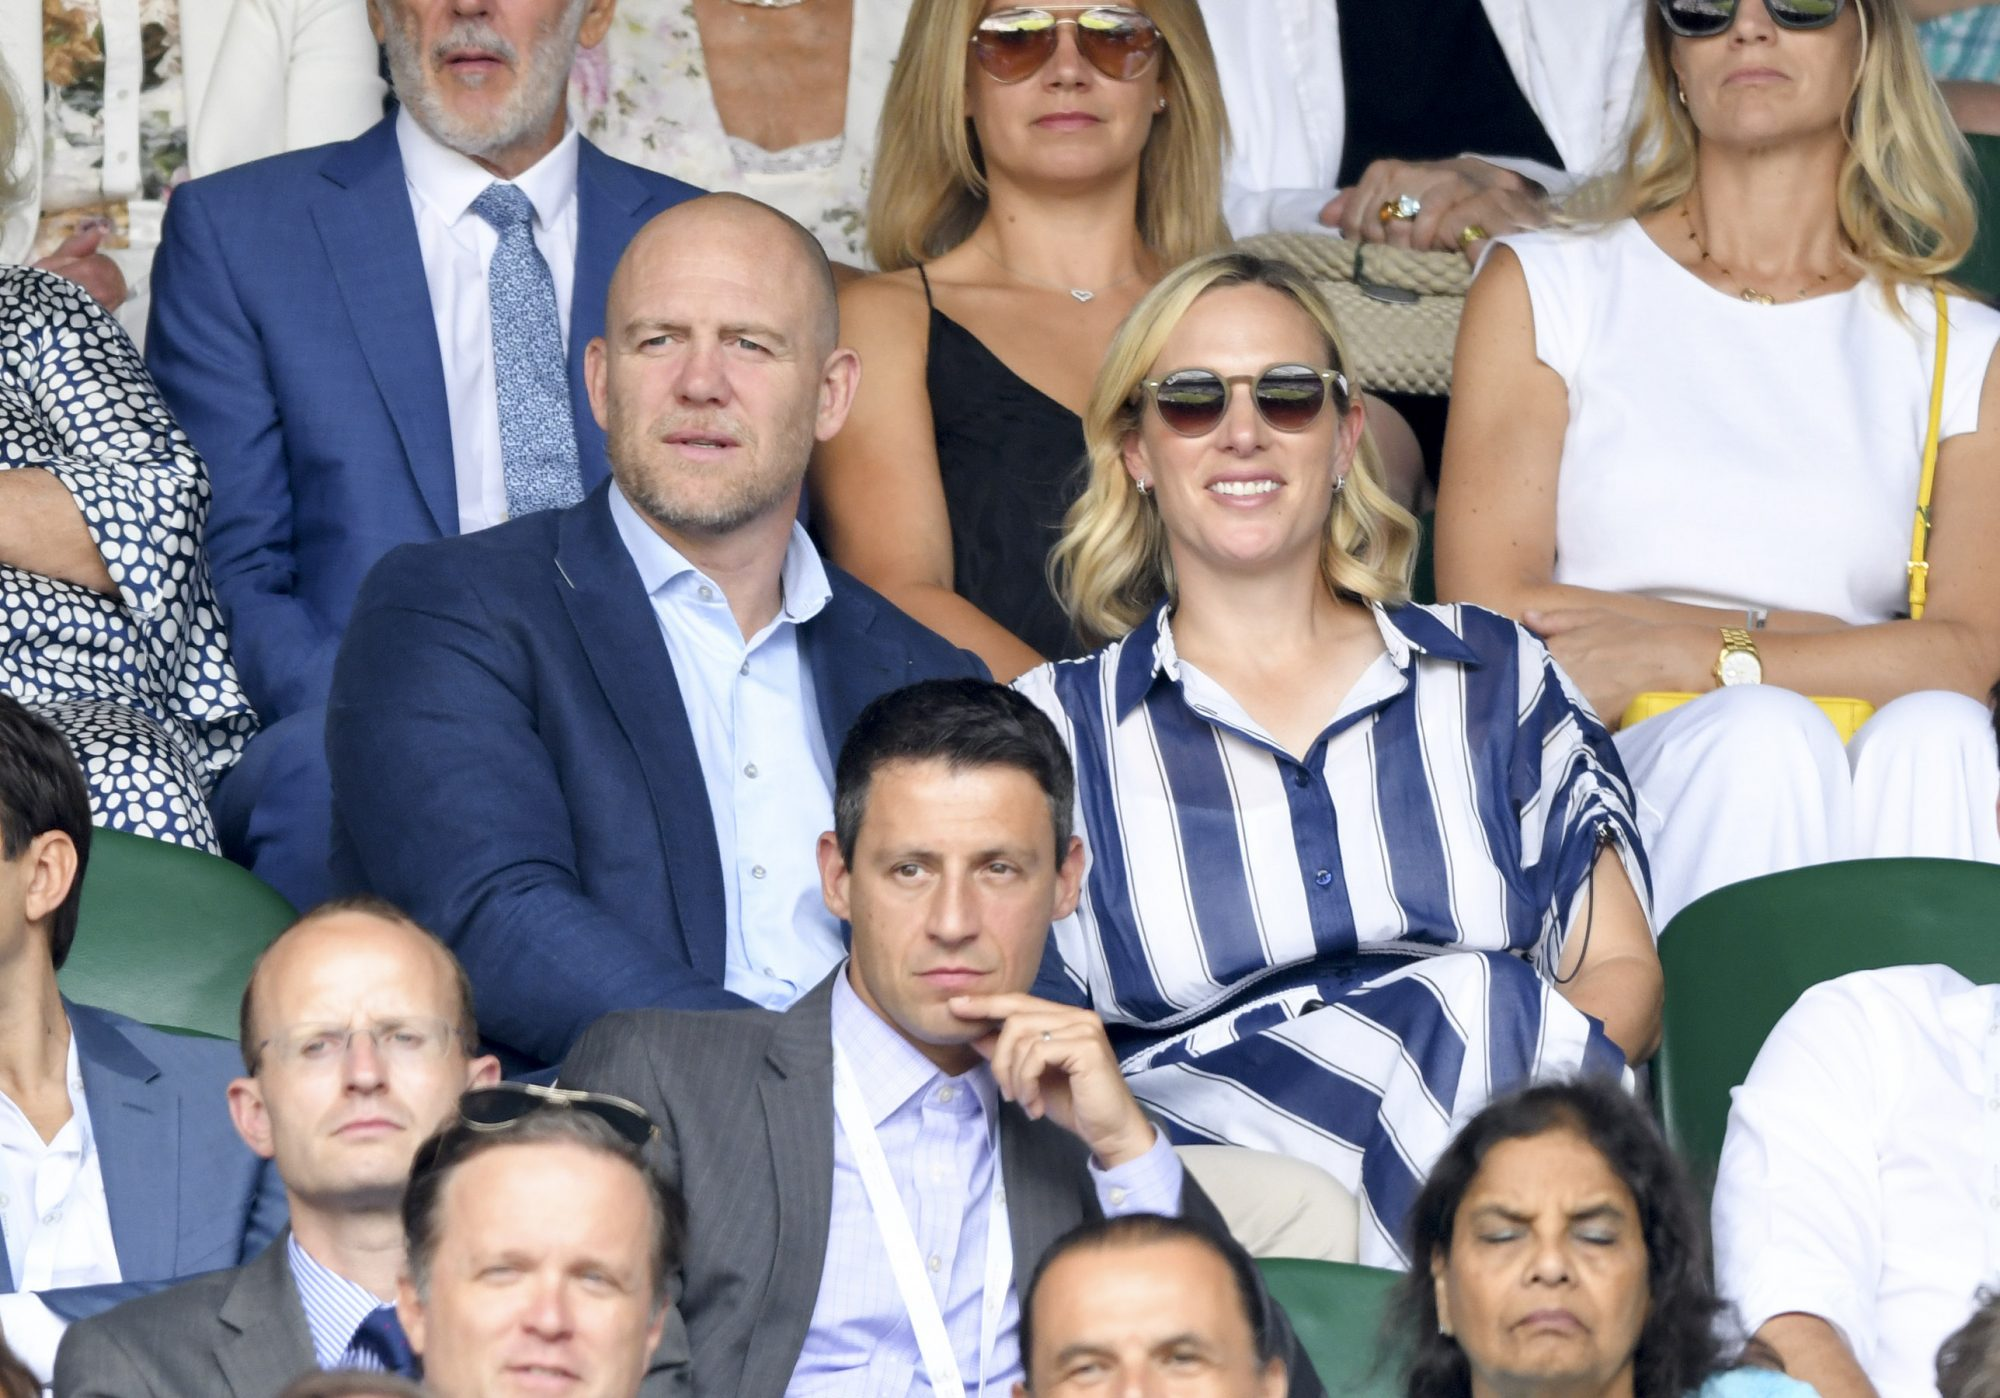 LONDON, ENGLAND - JULY 10: Mike Tindall and Zara Phillips attend day nine of the Wimbledon Tennis Championships at All England Lawn Tennis and Croquet Club on July 10, 2019 in London, England. (Photo by Karwai Tang/Getty Images)